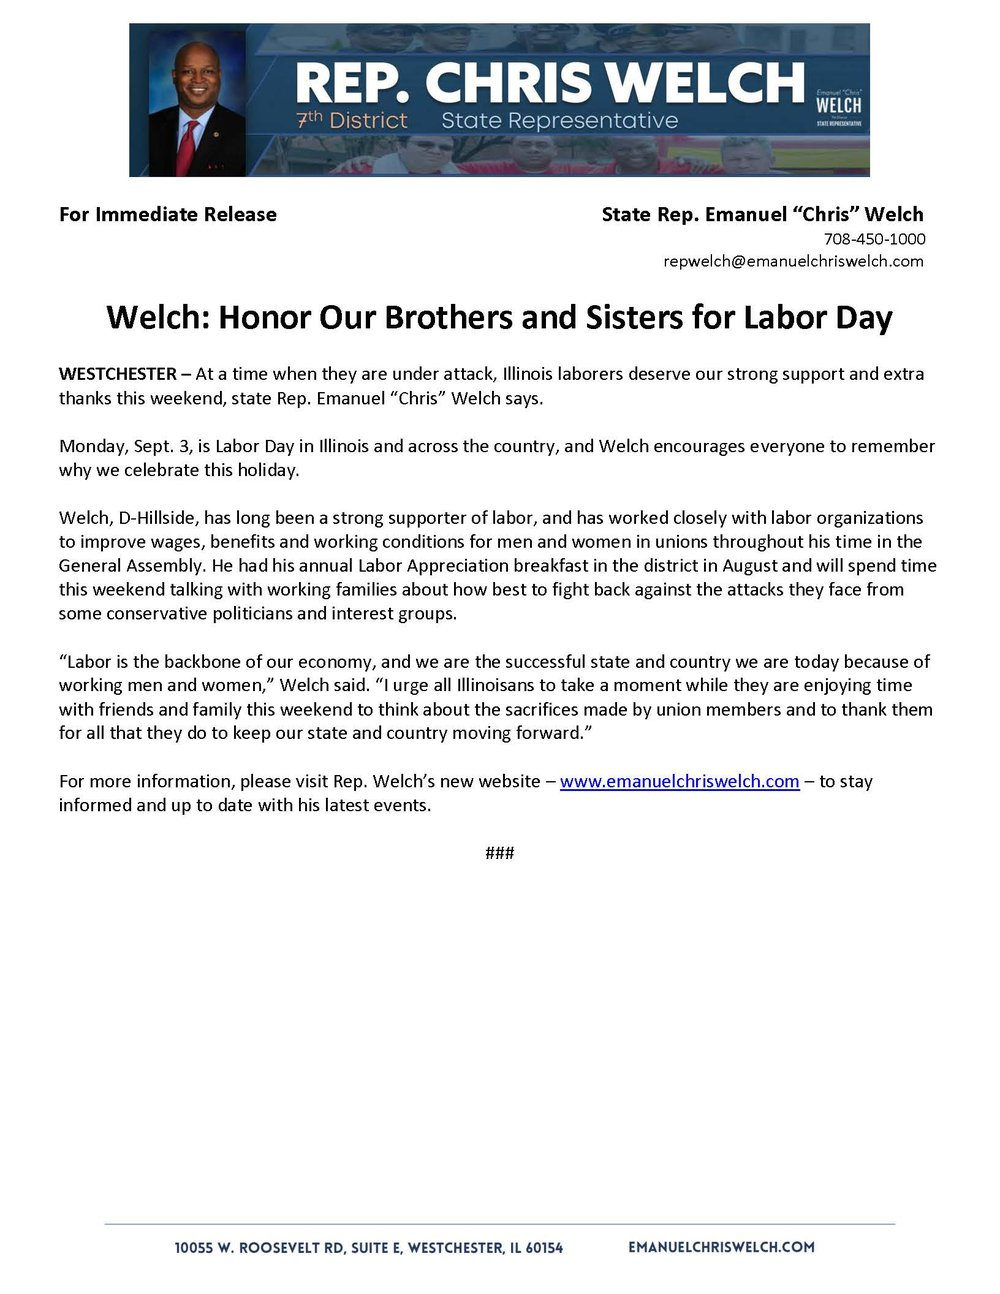 Honor Our Brothers and Sisters for Labor Day   (August 31, 2018)